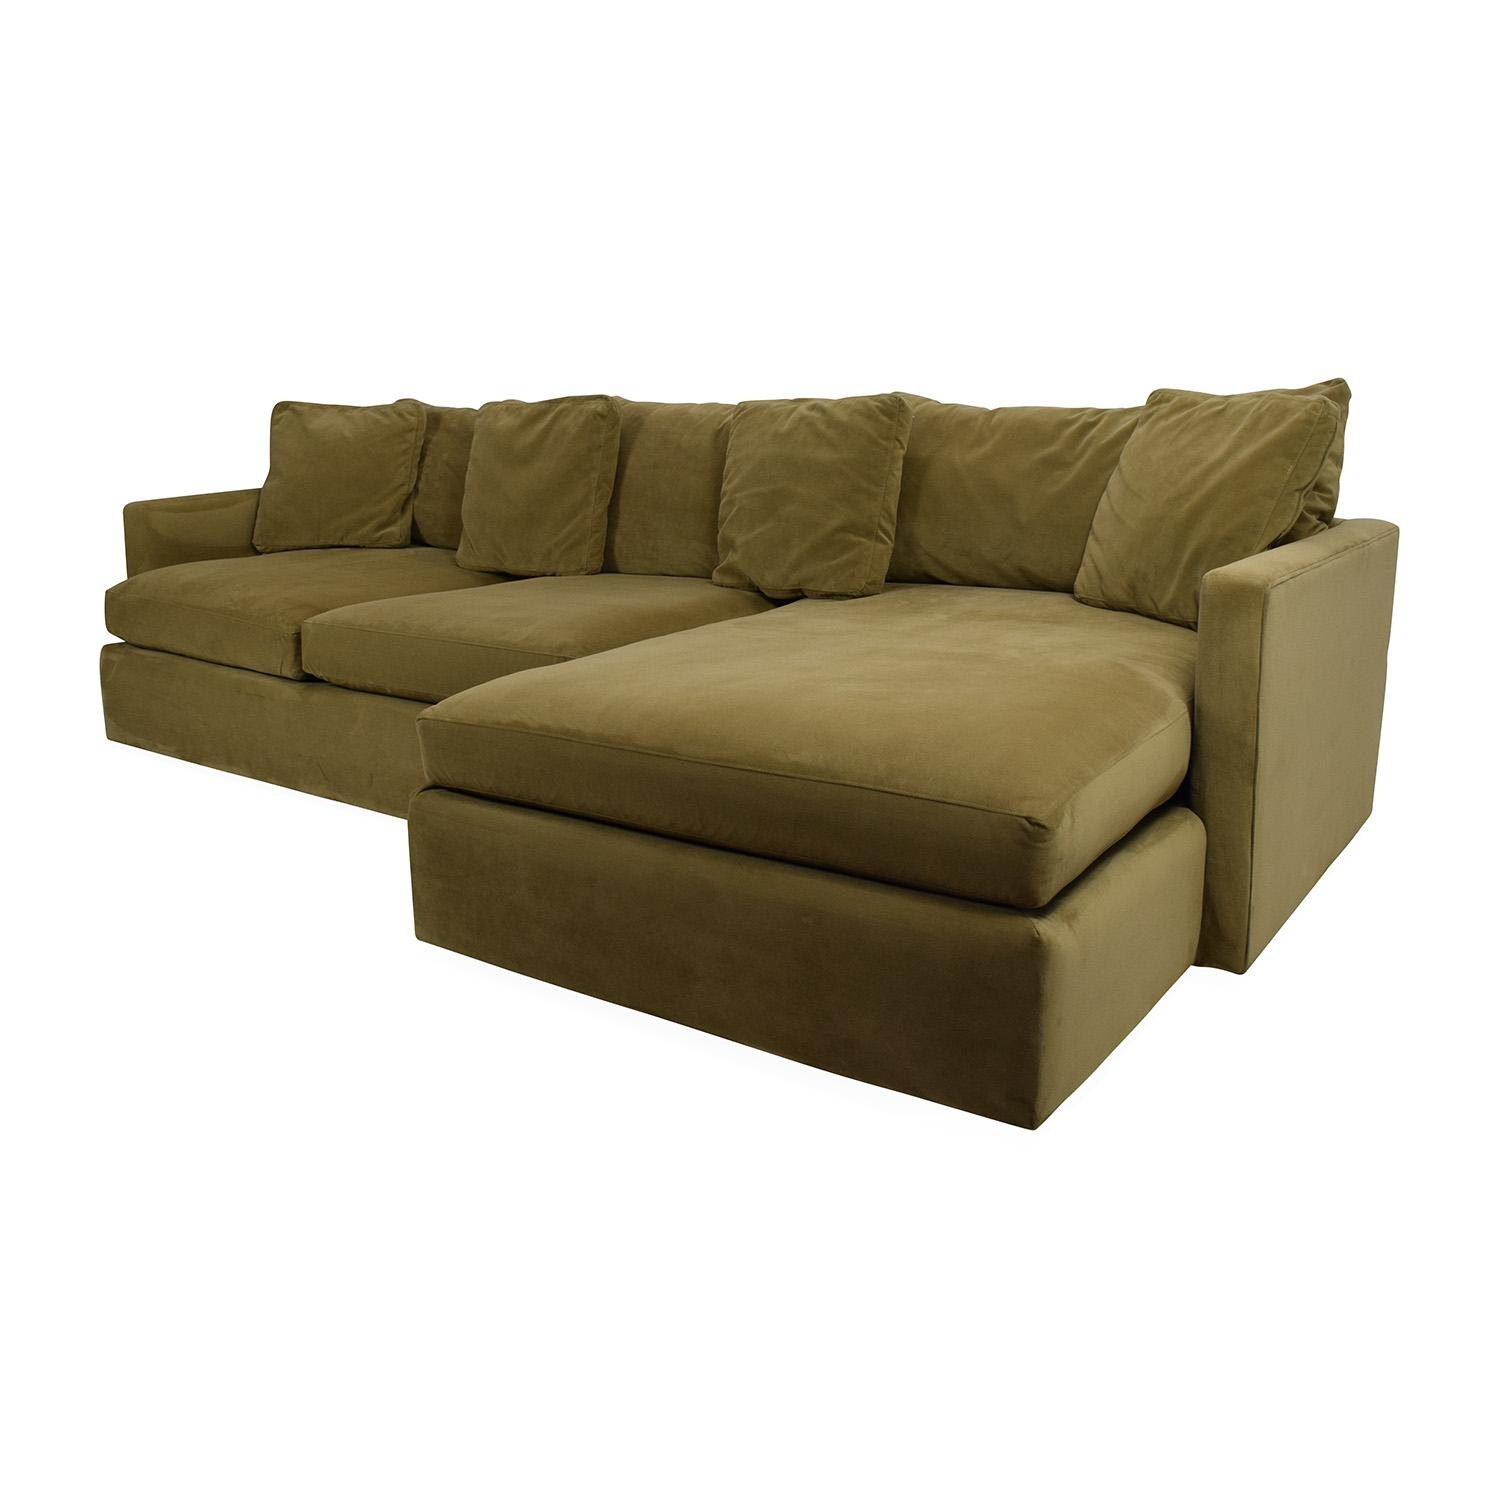 65% Off – Crate And Barrel Crate And Barrel Lounge Ii Sectional Intended For Sectional Crate And Barrel (Photo 9 of 20)